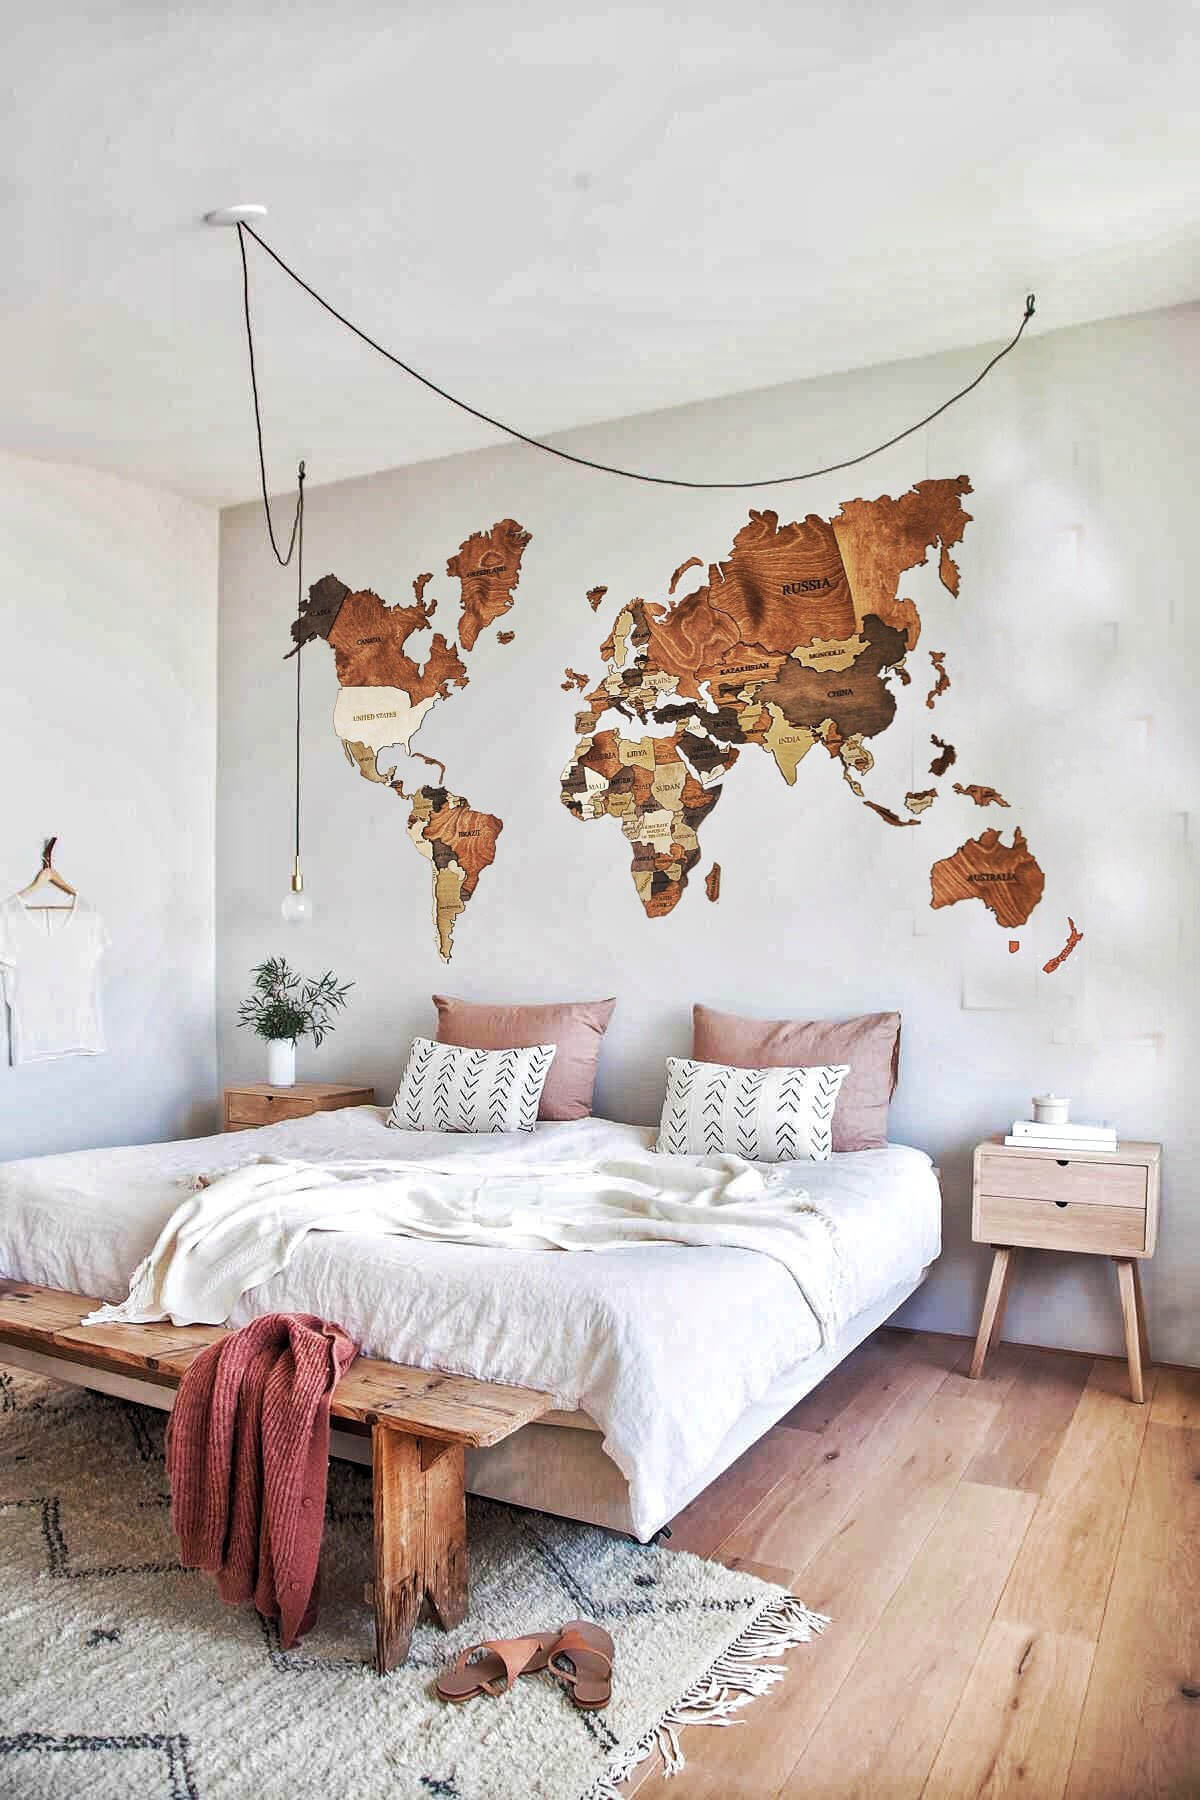 Get a World View from Your Bedroom